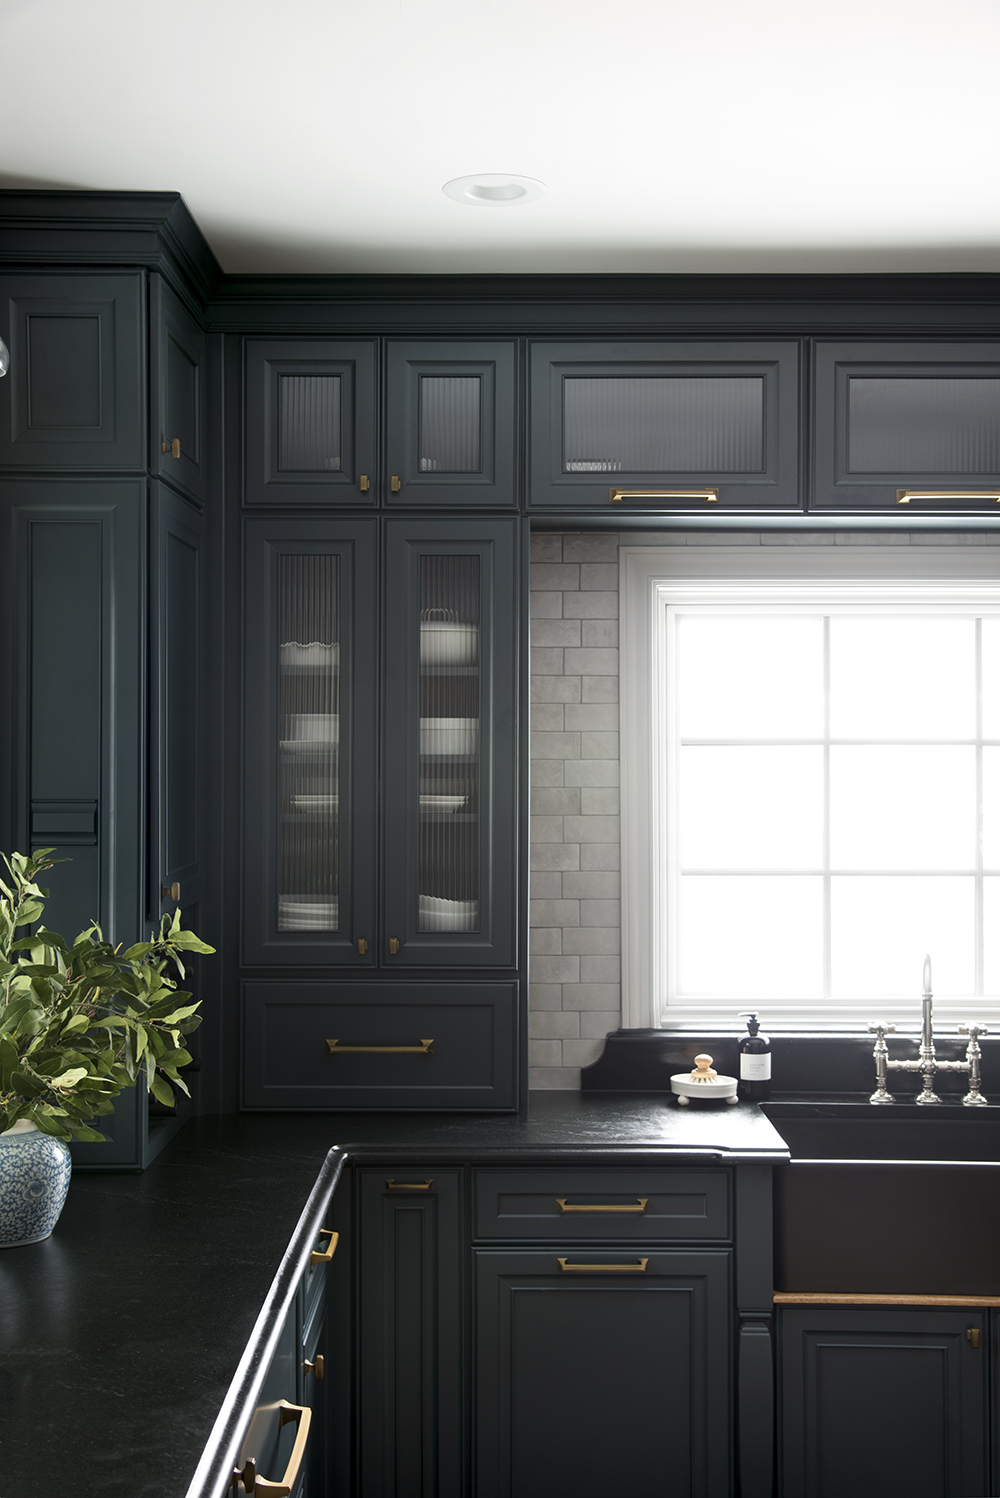 Our Dark & Moody Kitchen Reveal - roomfortuesday.com